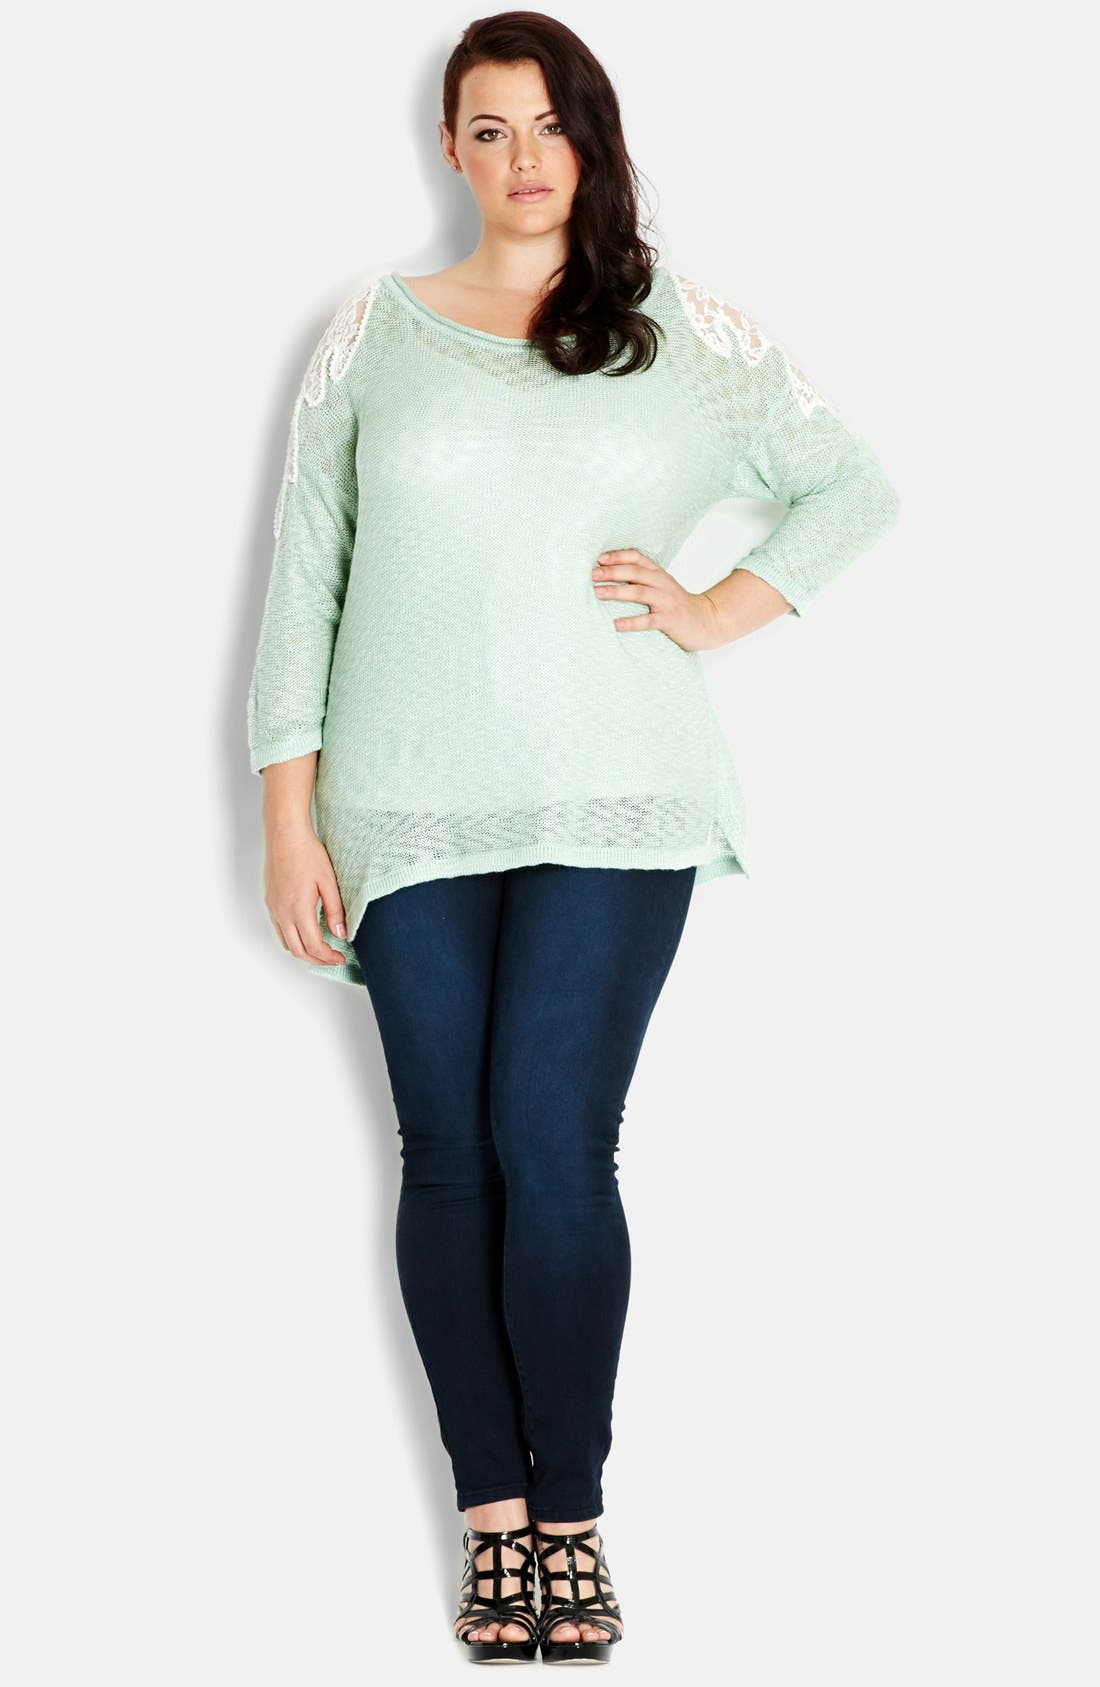 Main Image - City Chic 'Precious Pearl' Lace Inset Sweater (Plus Size)